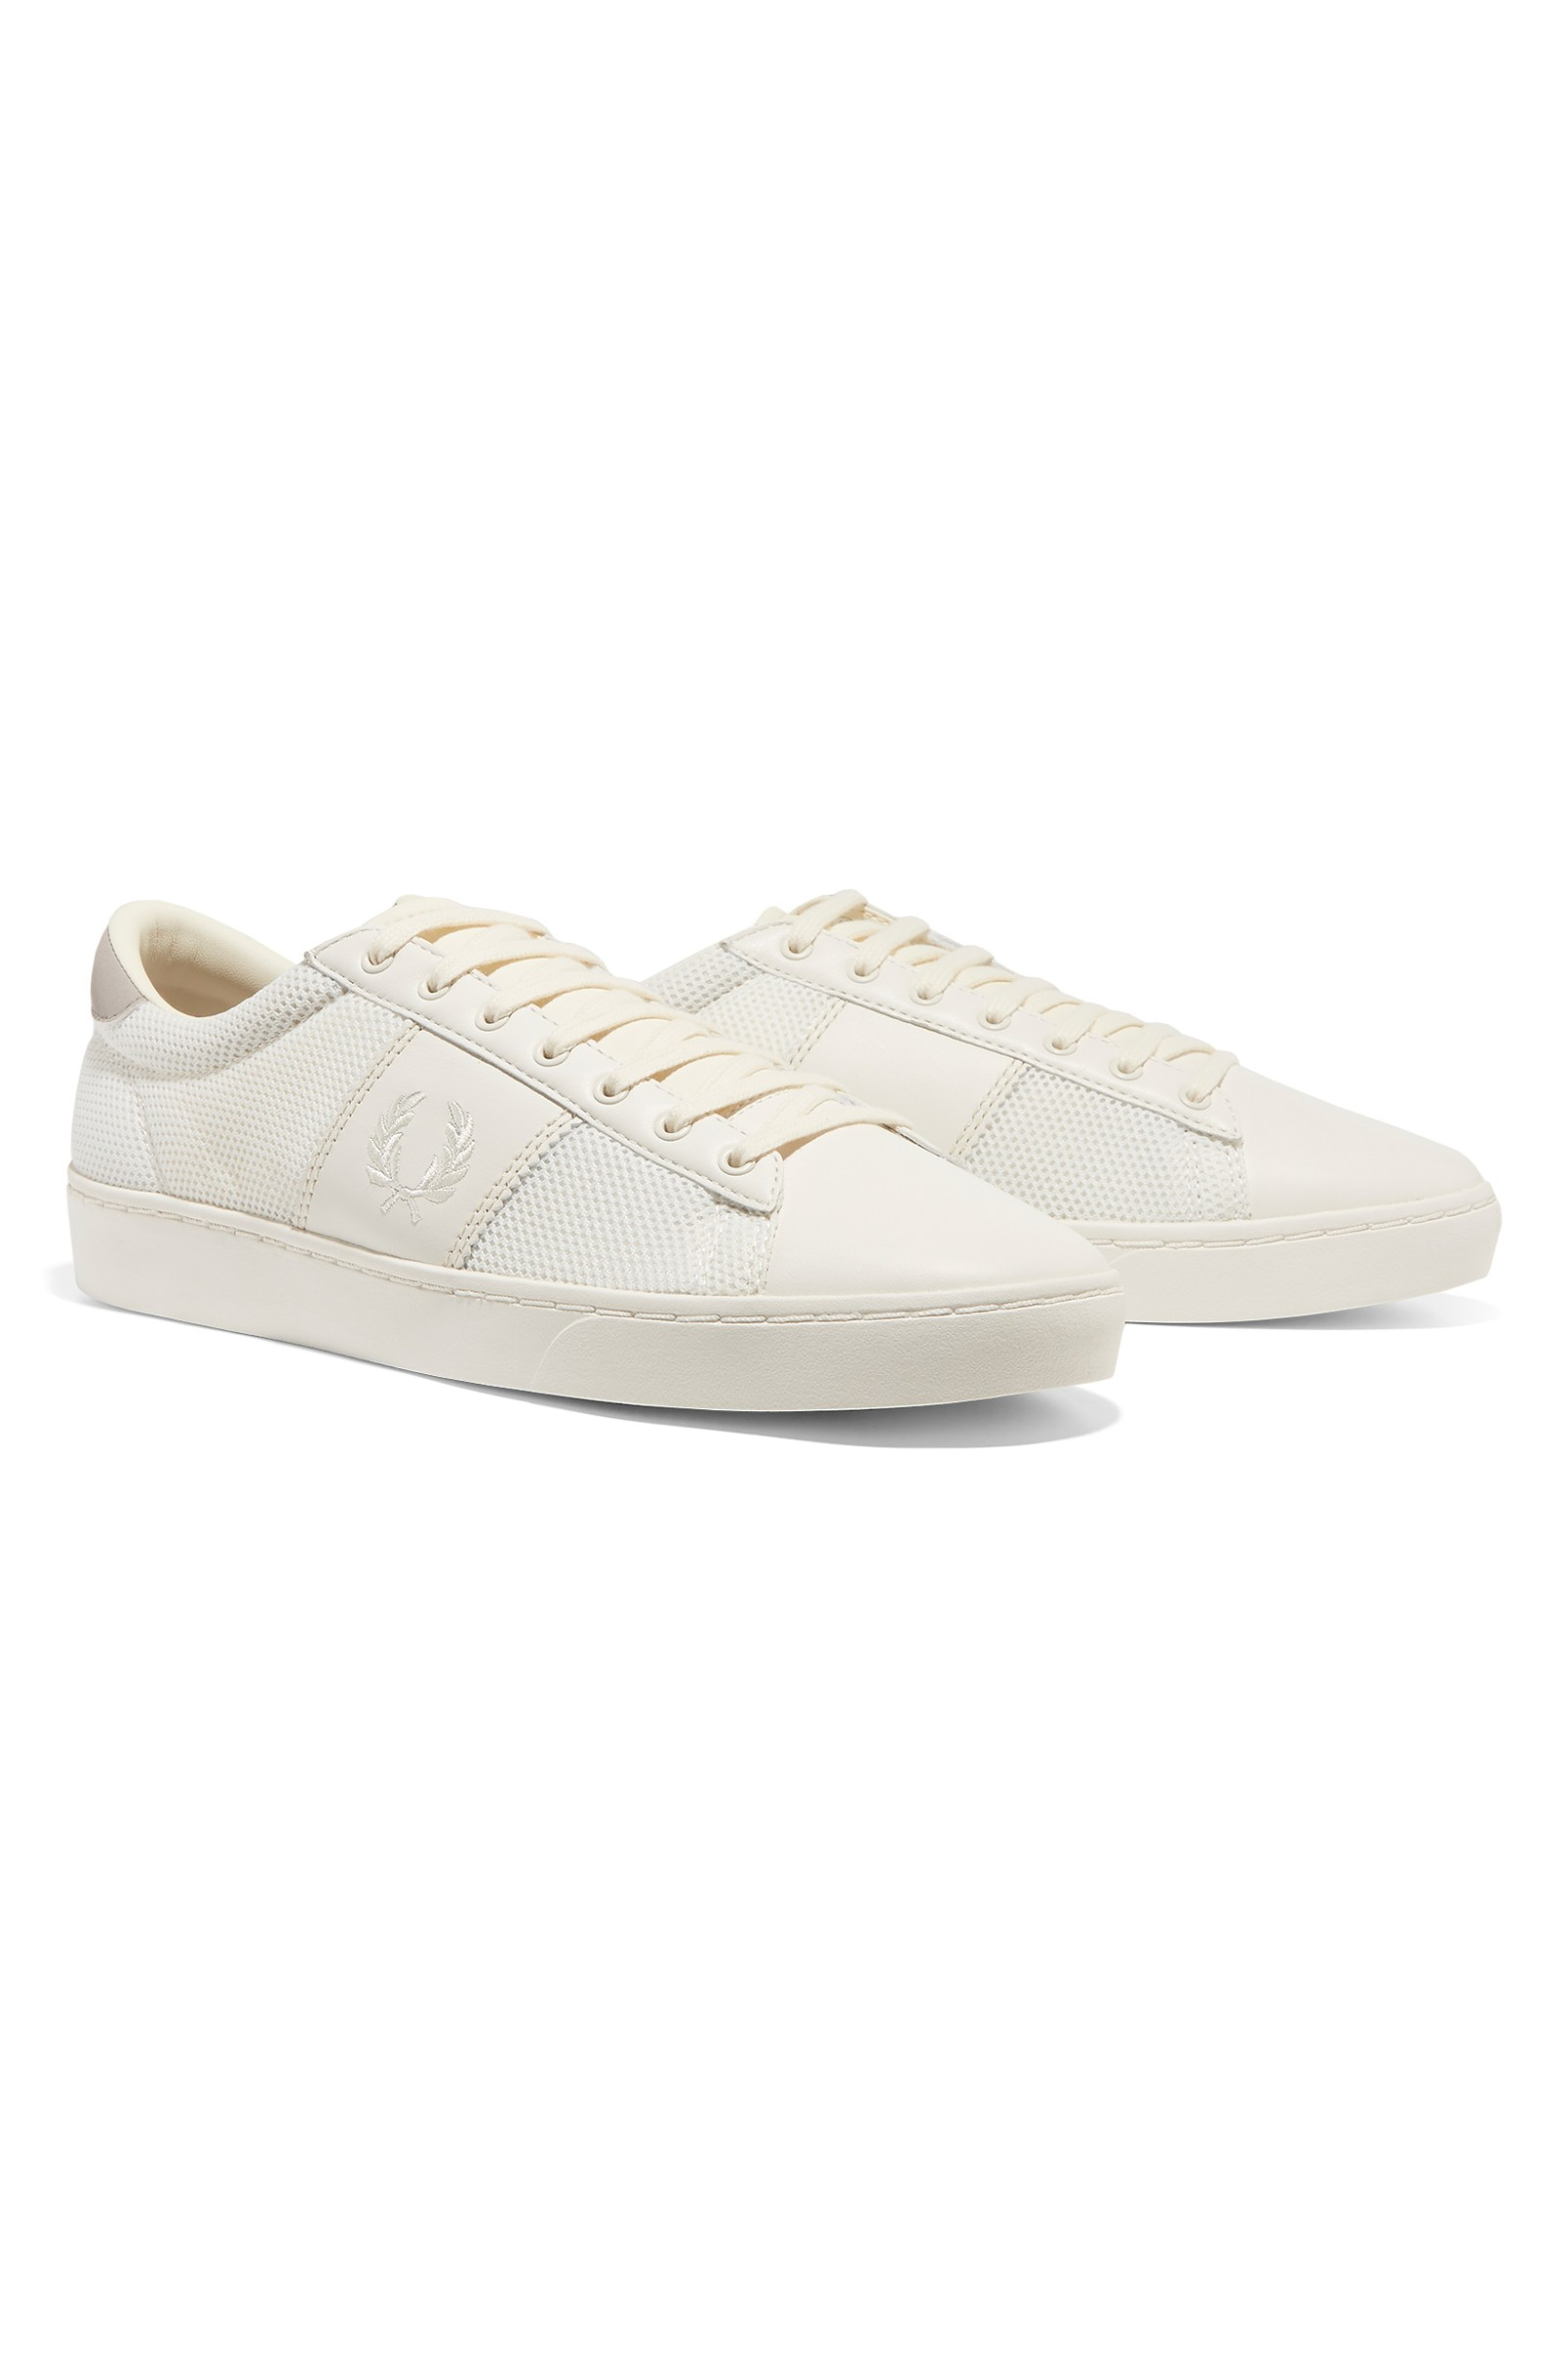 Spencer Mesh Leather Trainers In White - 760 Fred Perry Buy Cheap Inexpensive Outlet Online Cheap Sale Order Discount For Cheap rFriyd